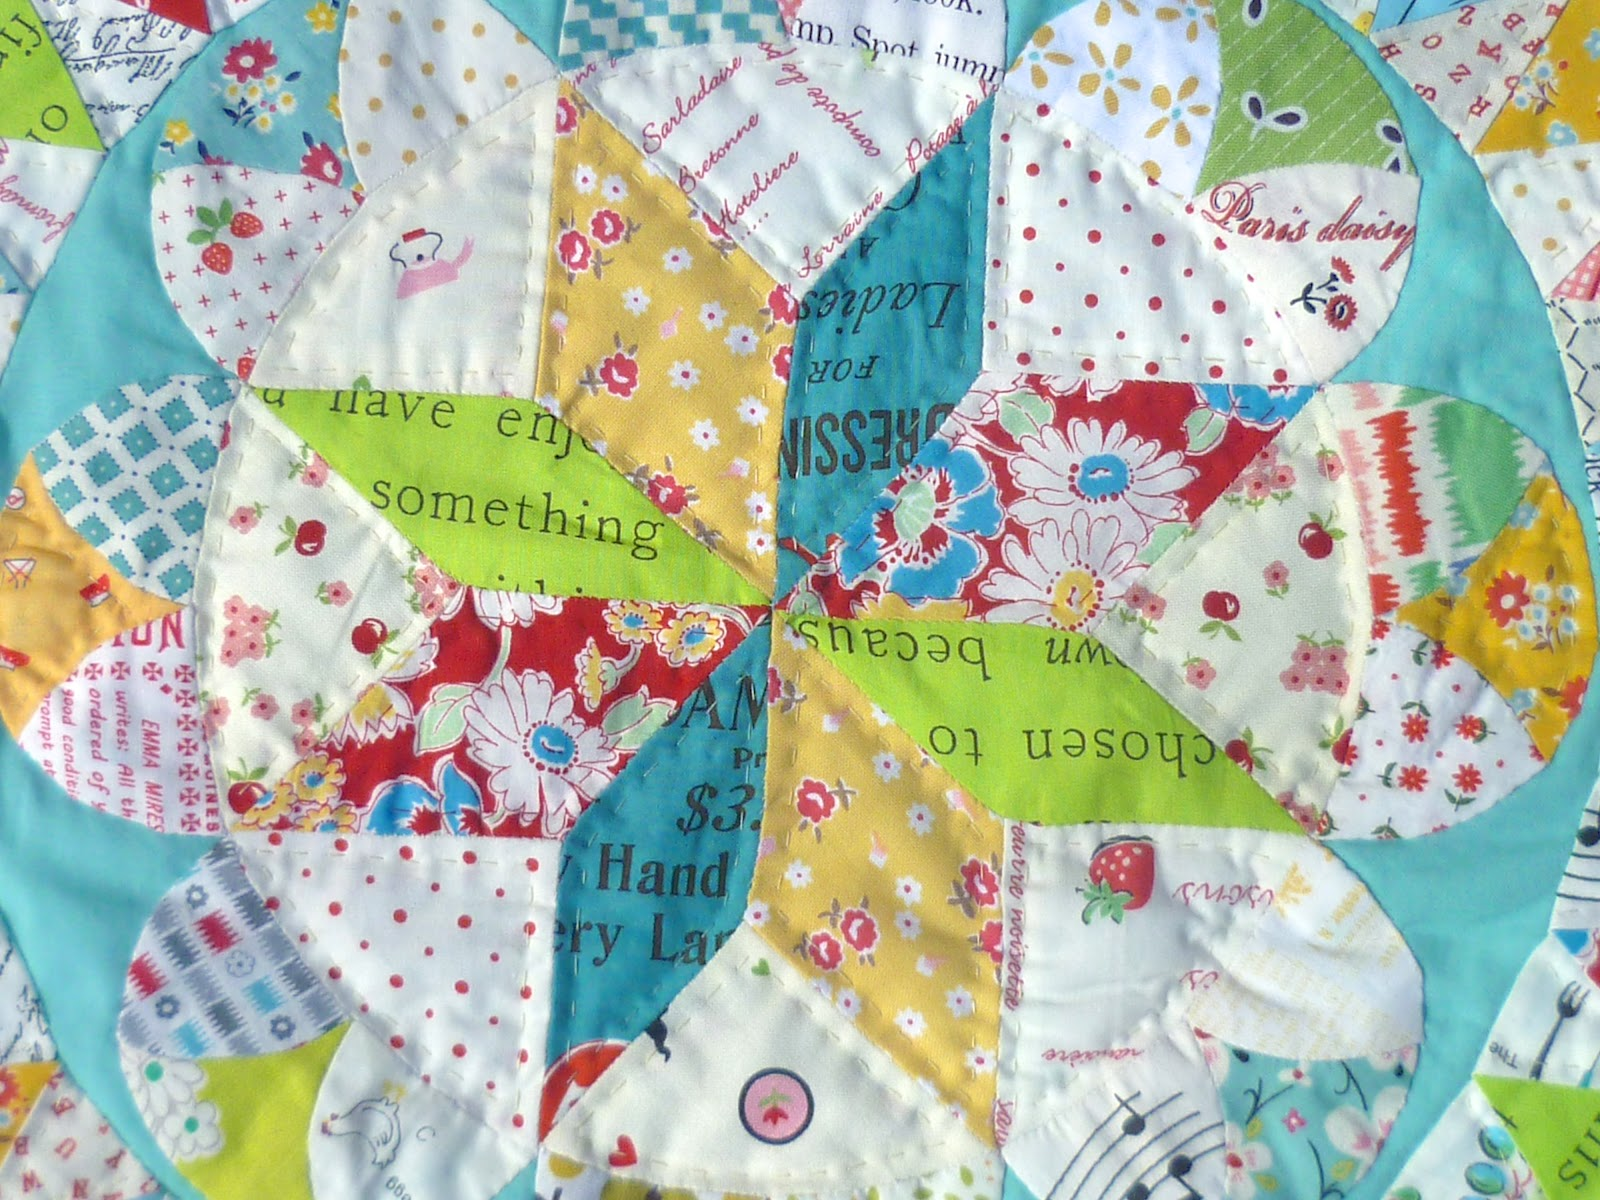 english paper piecing English paper piecing is basically the process of wrapping fabric around paper to make crisply formed shapes to be sewn together by hand once sewn, the papers can be removed and a beautifully pieced patchwork is left from which to make cushions, quilts or anything else you can think of.